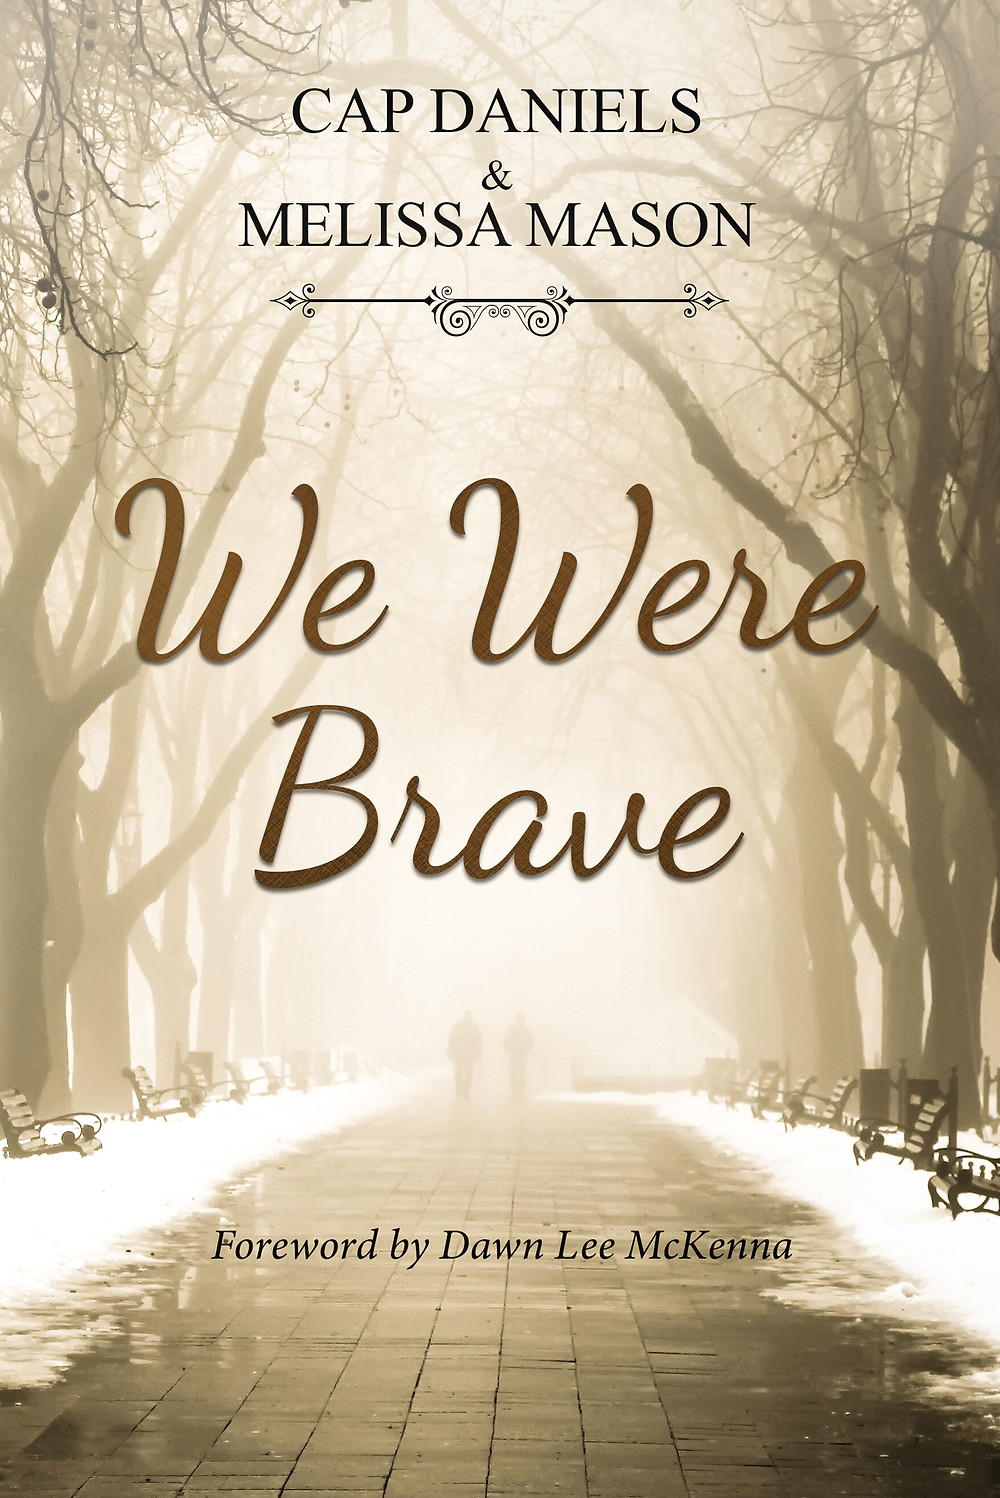 We Were Brave Cap Daniels Melissa Mason